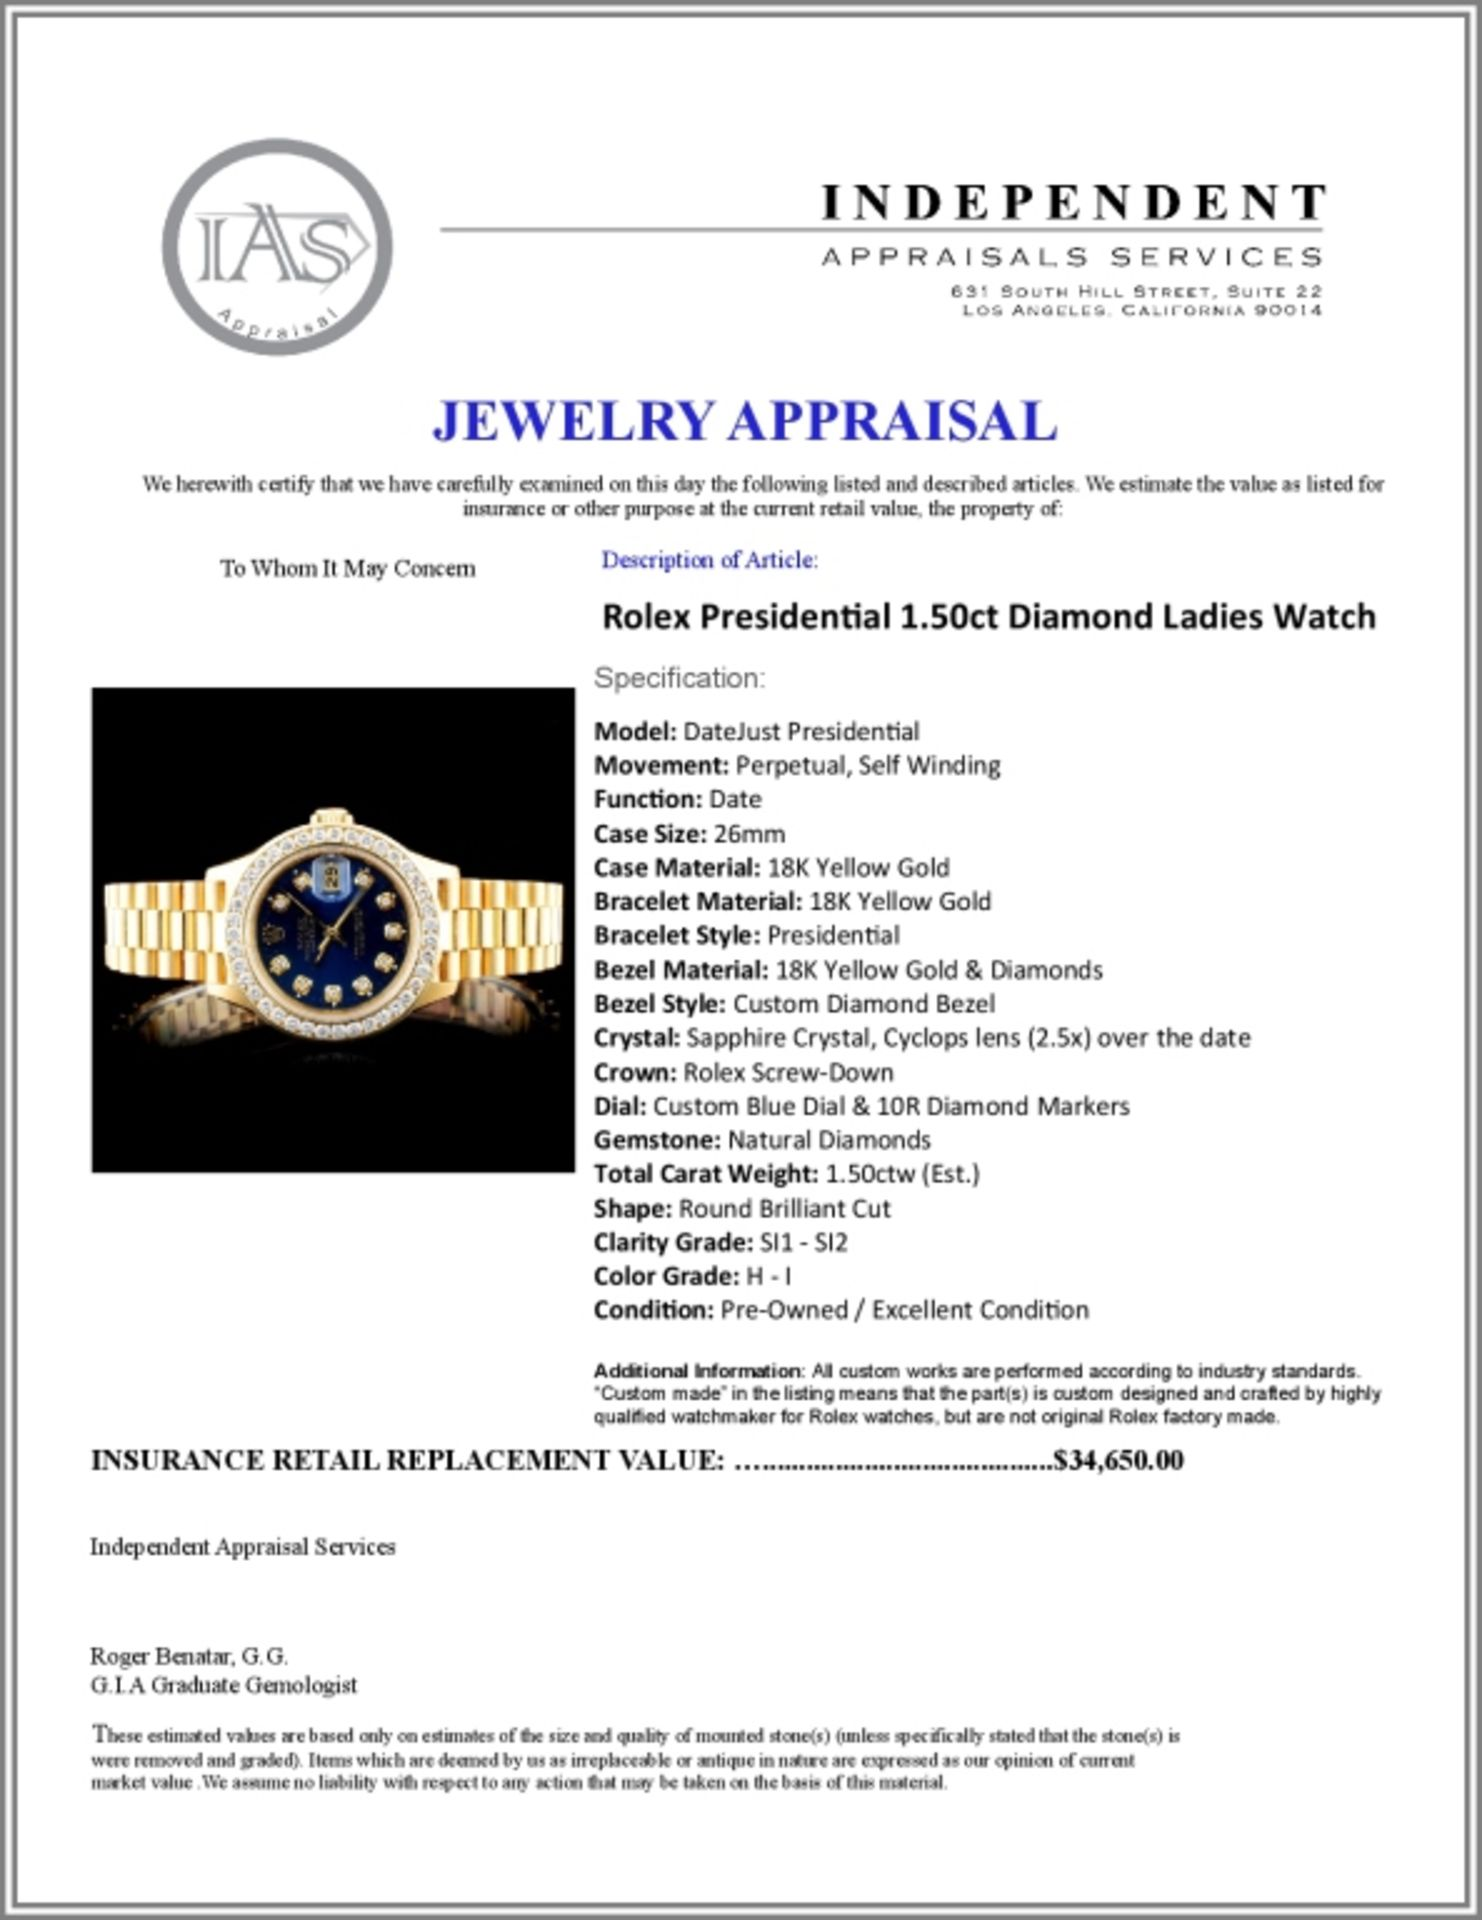 Rolex Presidential Diamond Ladies Watch - Image 6 of 6